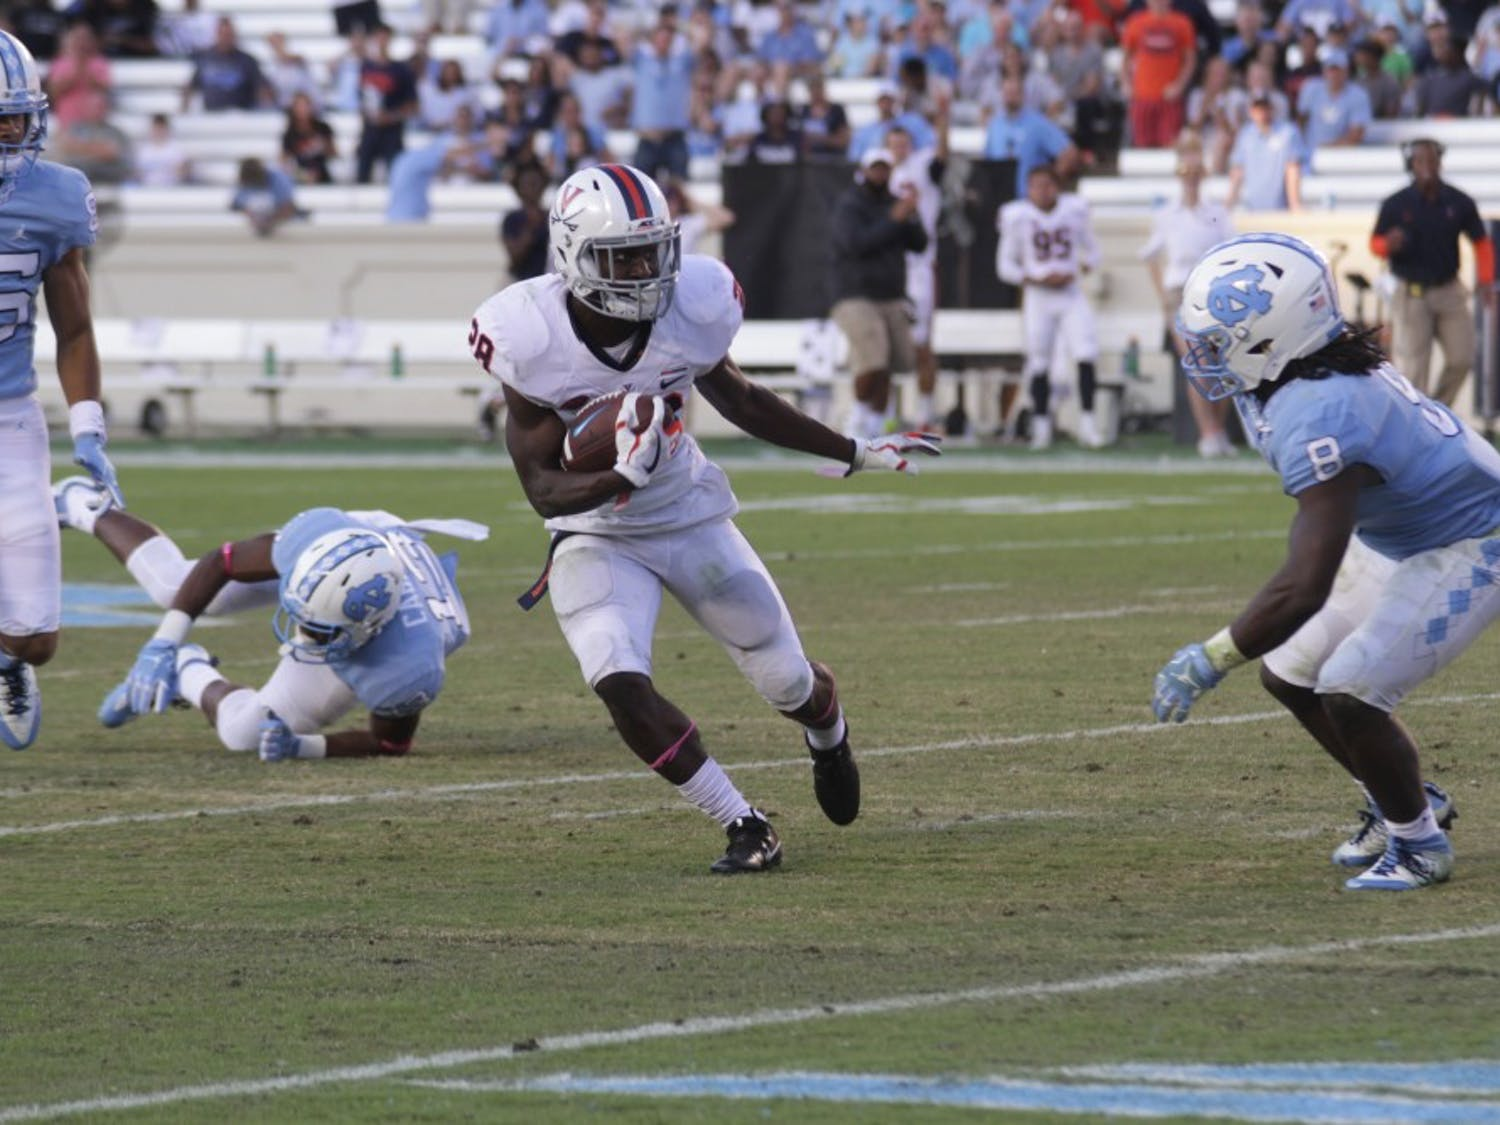 The North Carolina football team lost, 20-14, to Virginia on Saturday, Oct. 14, in Kenan Stadium. The Tar Heels are now 1-6 and 0-4 in the ACC.